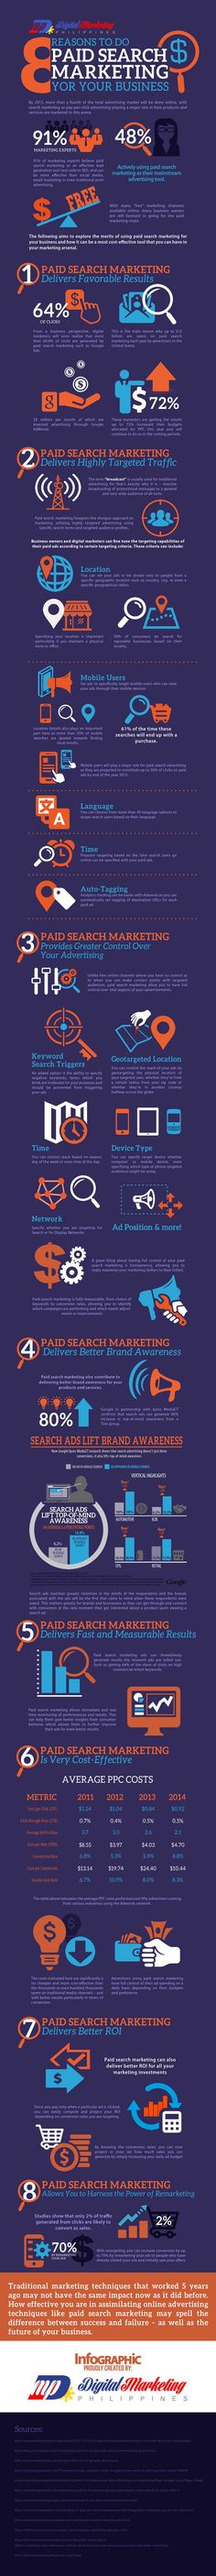 Paid Search Marketing: 8 Business Benefits You Can't Ignore